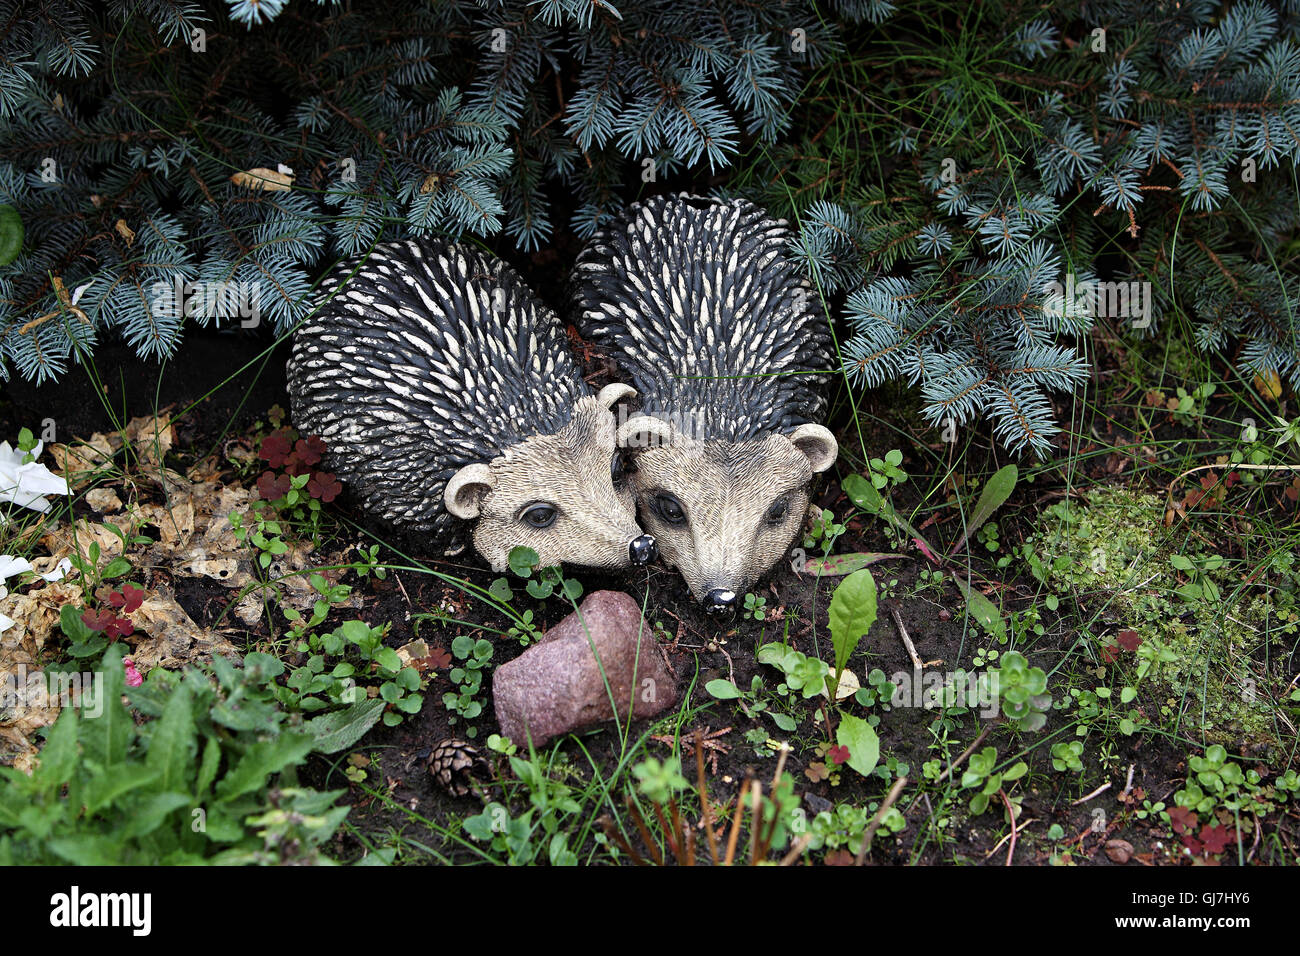 Garden - The figures of hedgehogs in love introduced in landscaping. - Stock Image